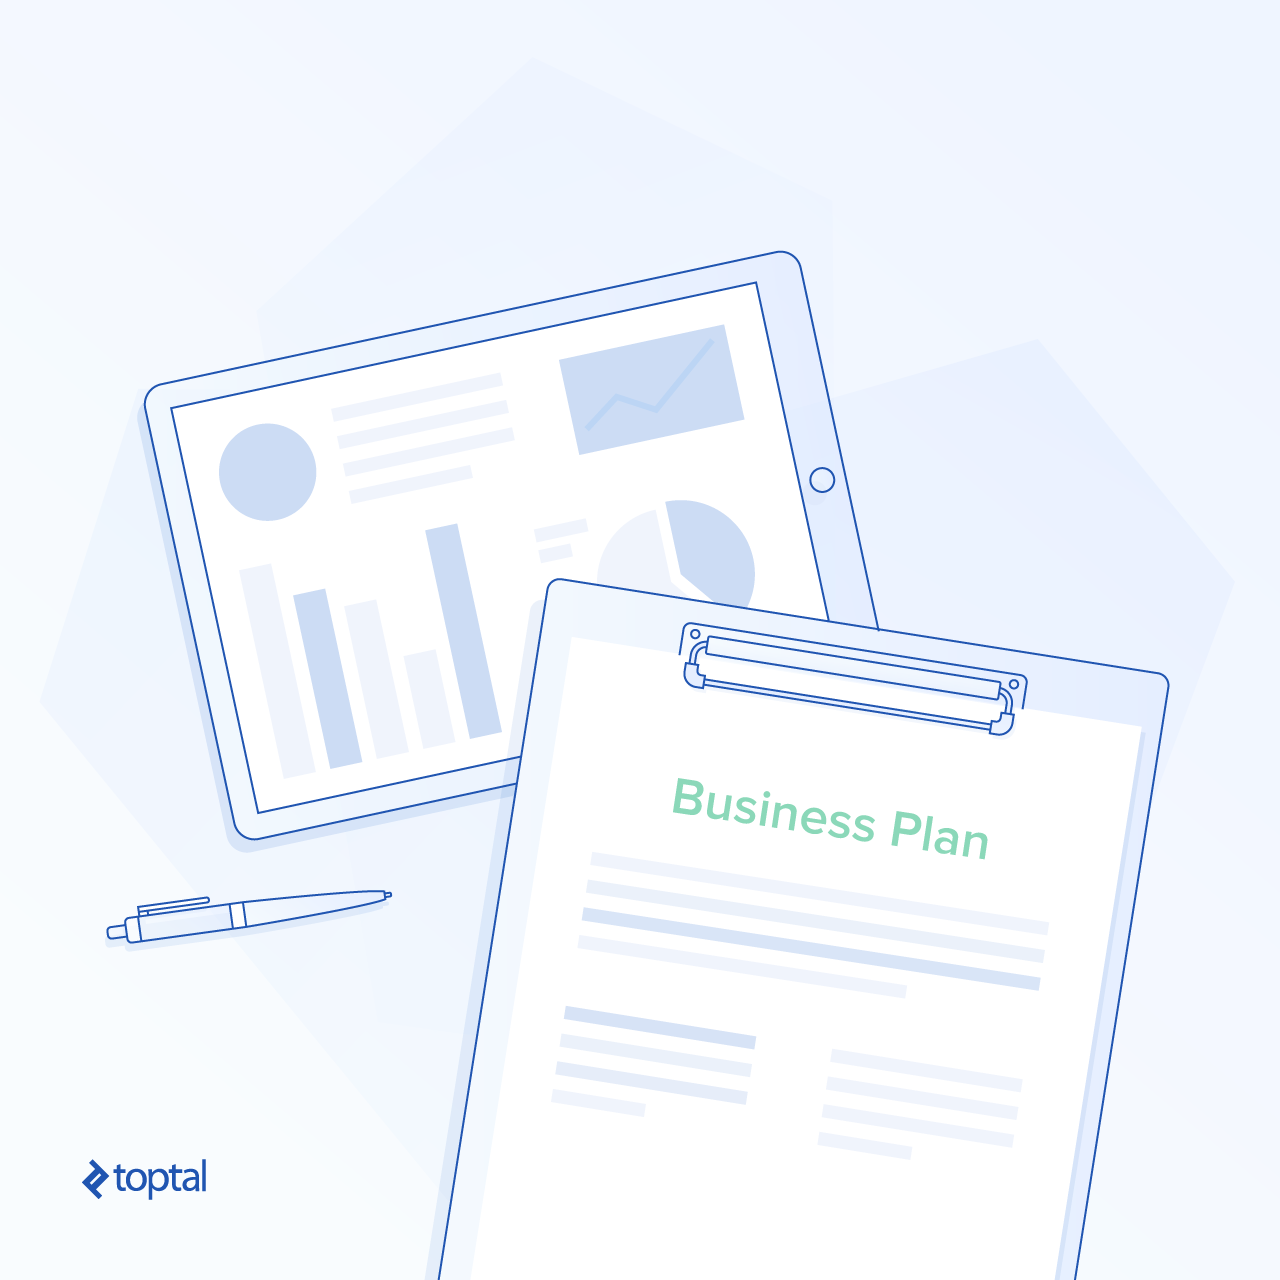 Illustration of a business plan document and graphic presentation